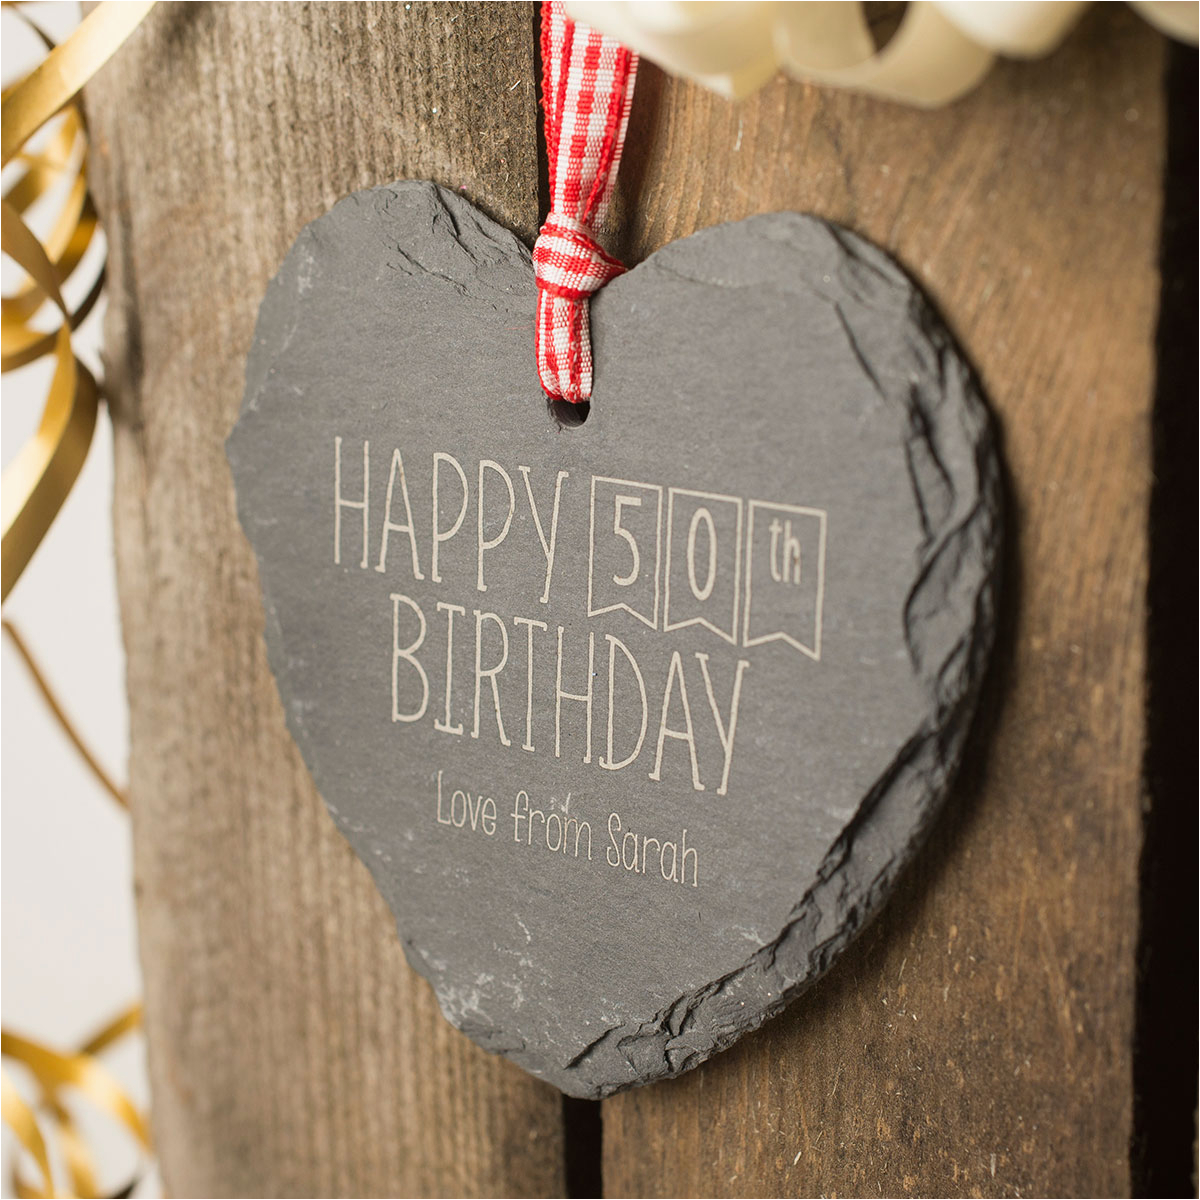 Best 50th Birthday Gifts for Husband 50th Birthday Gift Ideas for My Husband Gift Ftempo